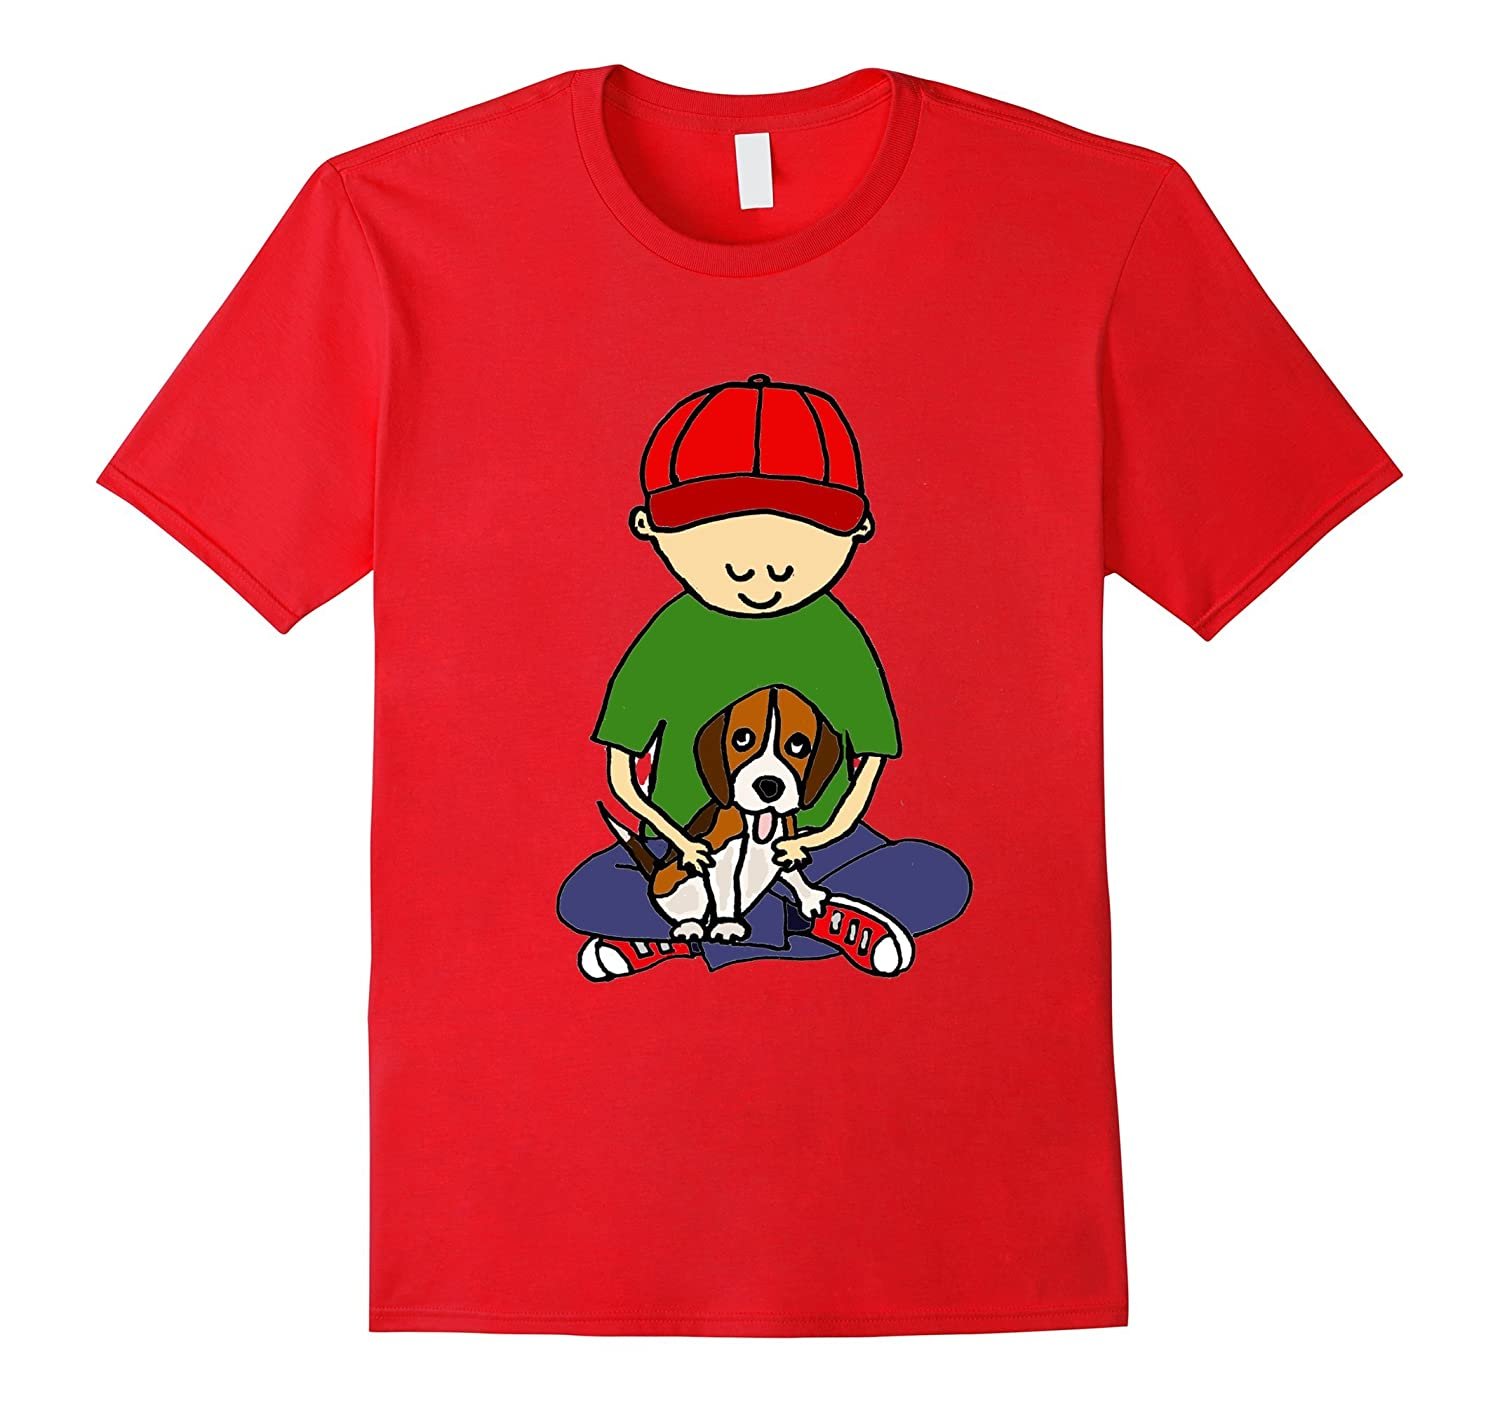 Smiletodaytees Cute Boy Hugging Beagle Dog T-shirt-BN